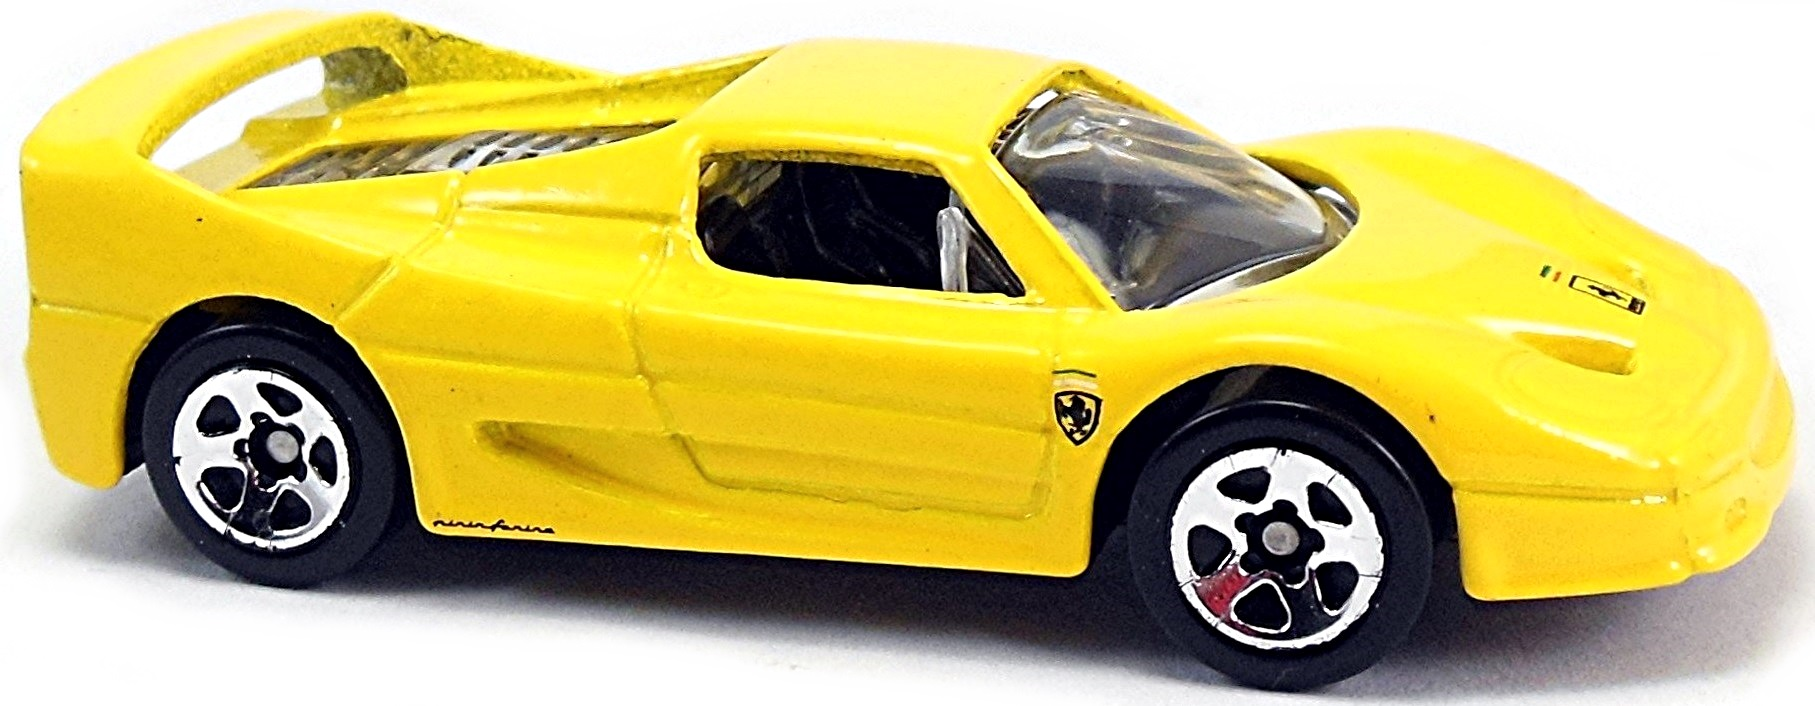 Ferrari f50 hardtop 75mm 1999 hot wheels newsletter ferrari f50 b vanachro Image collections